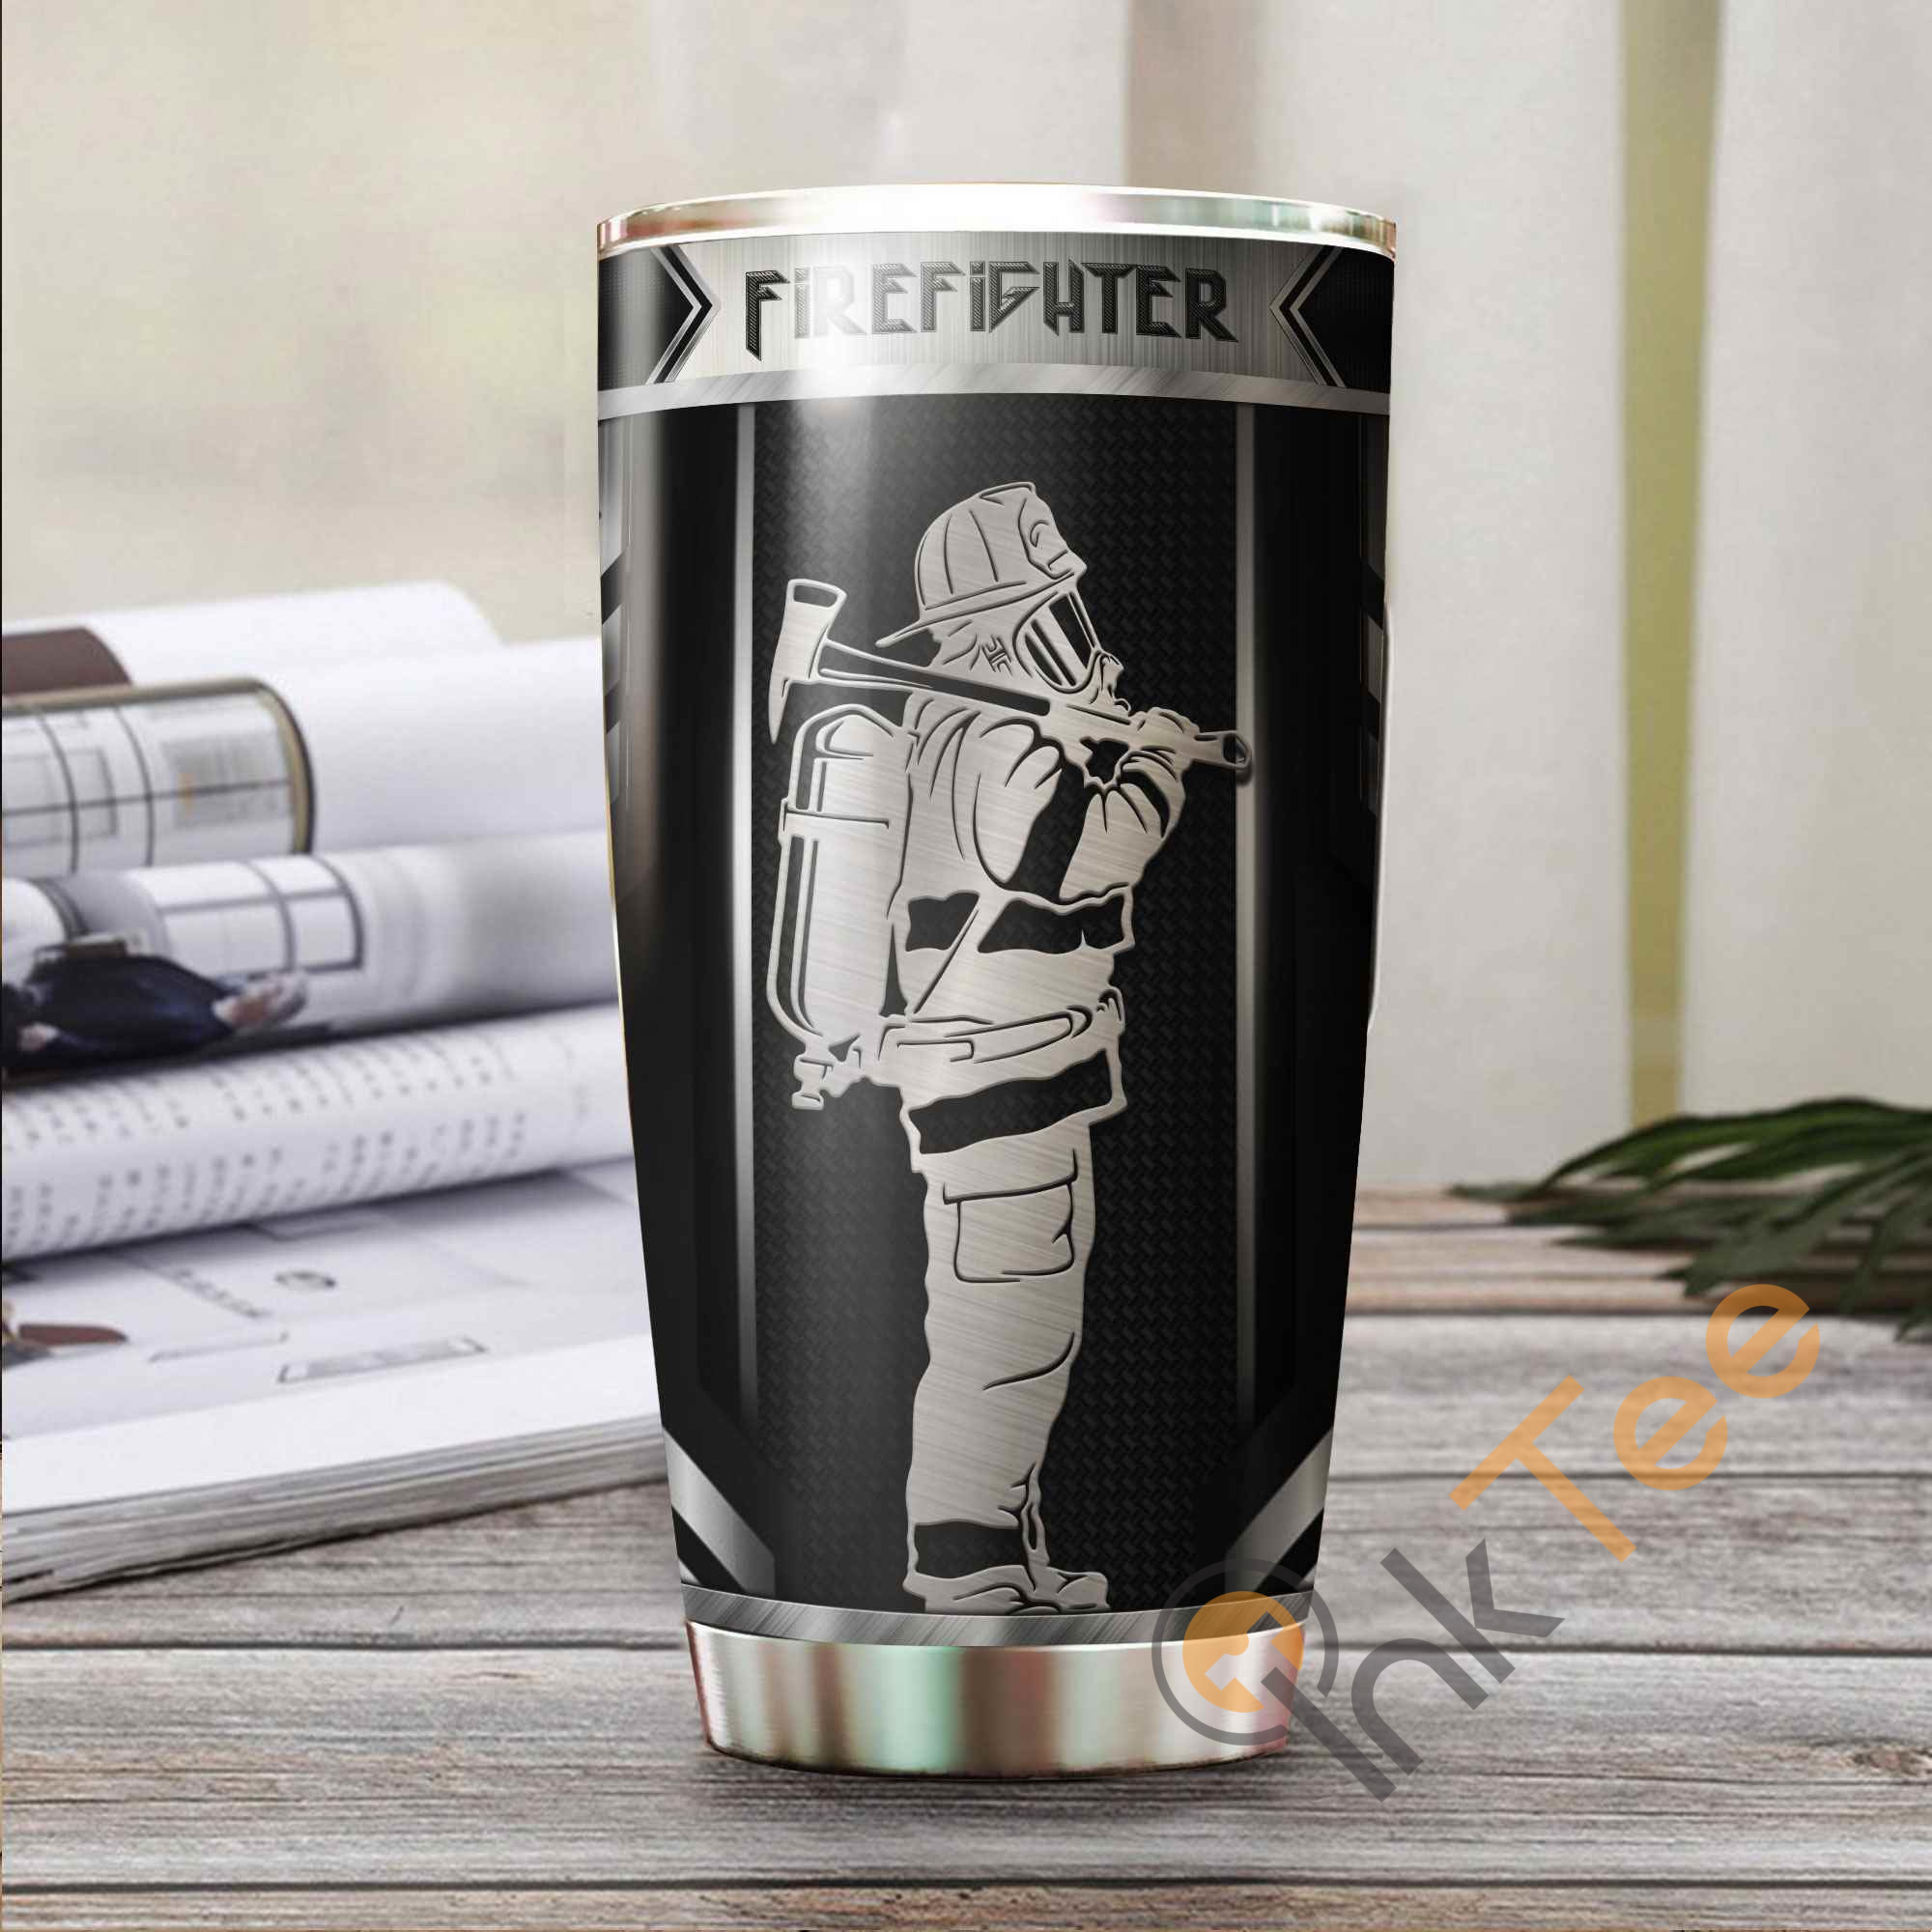 Firefighter Metal Amazon Best Seller Sku 3644 Stainless Steel Tumbler